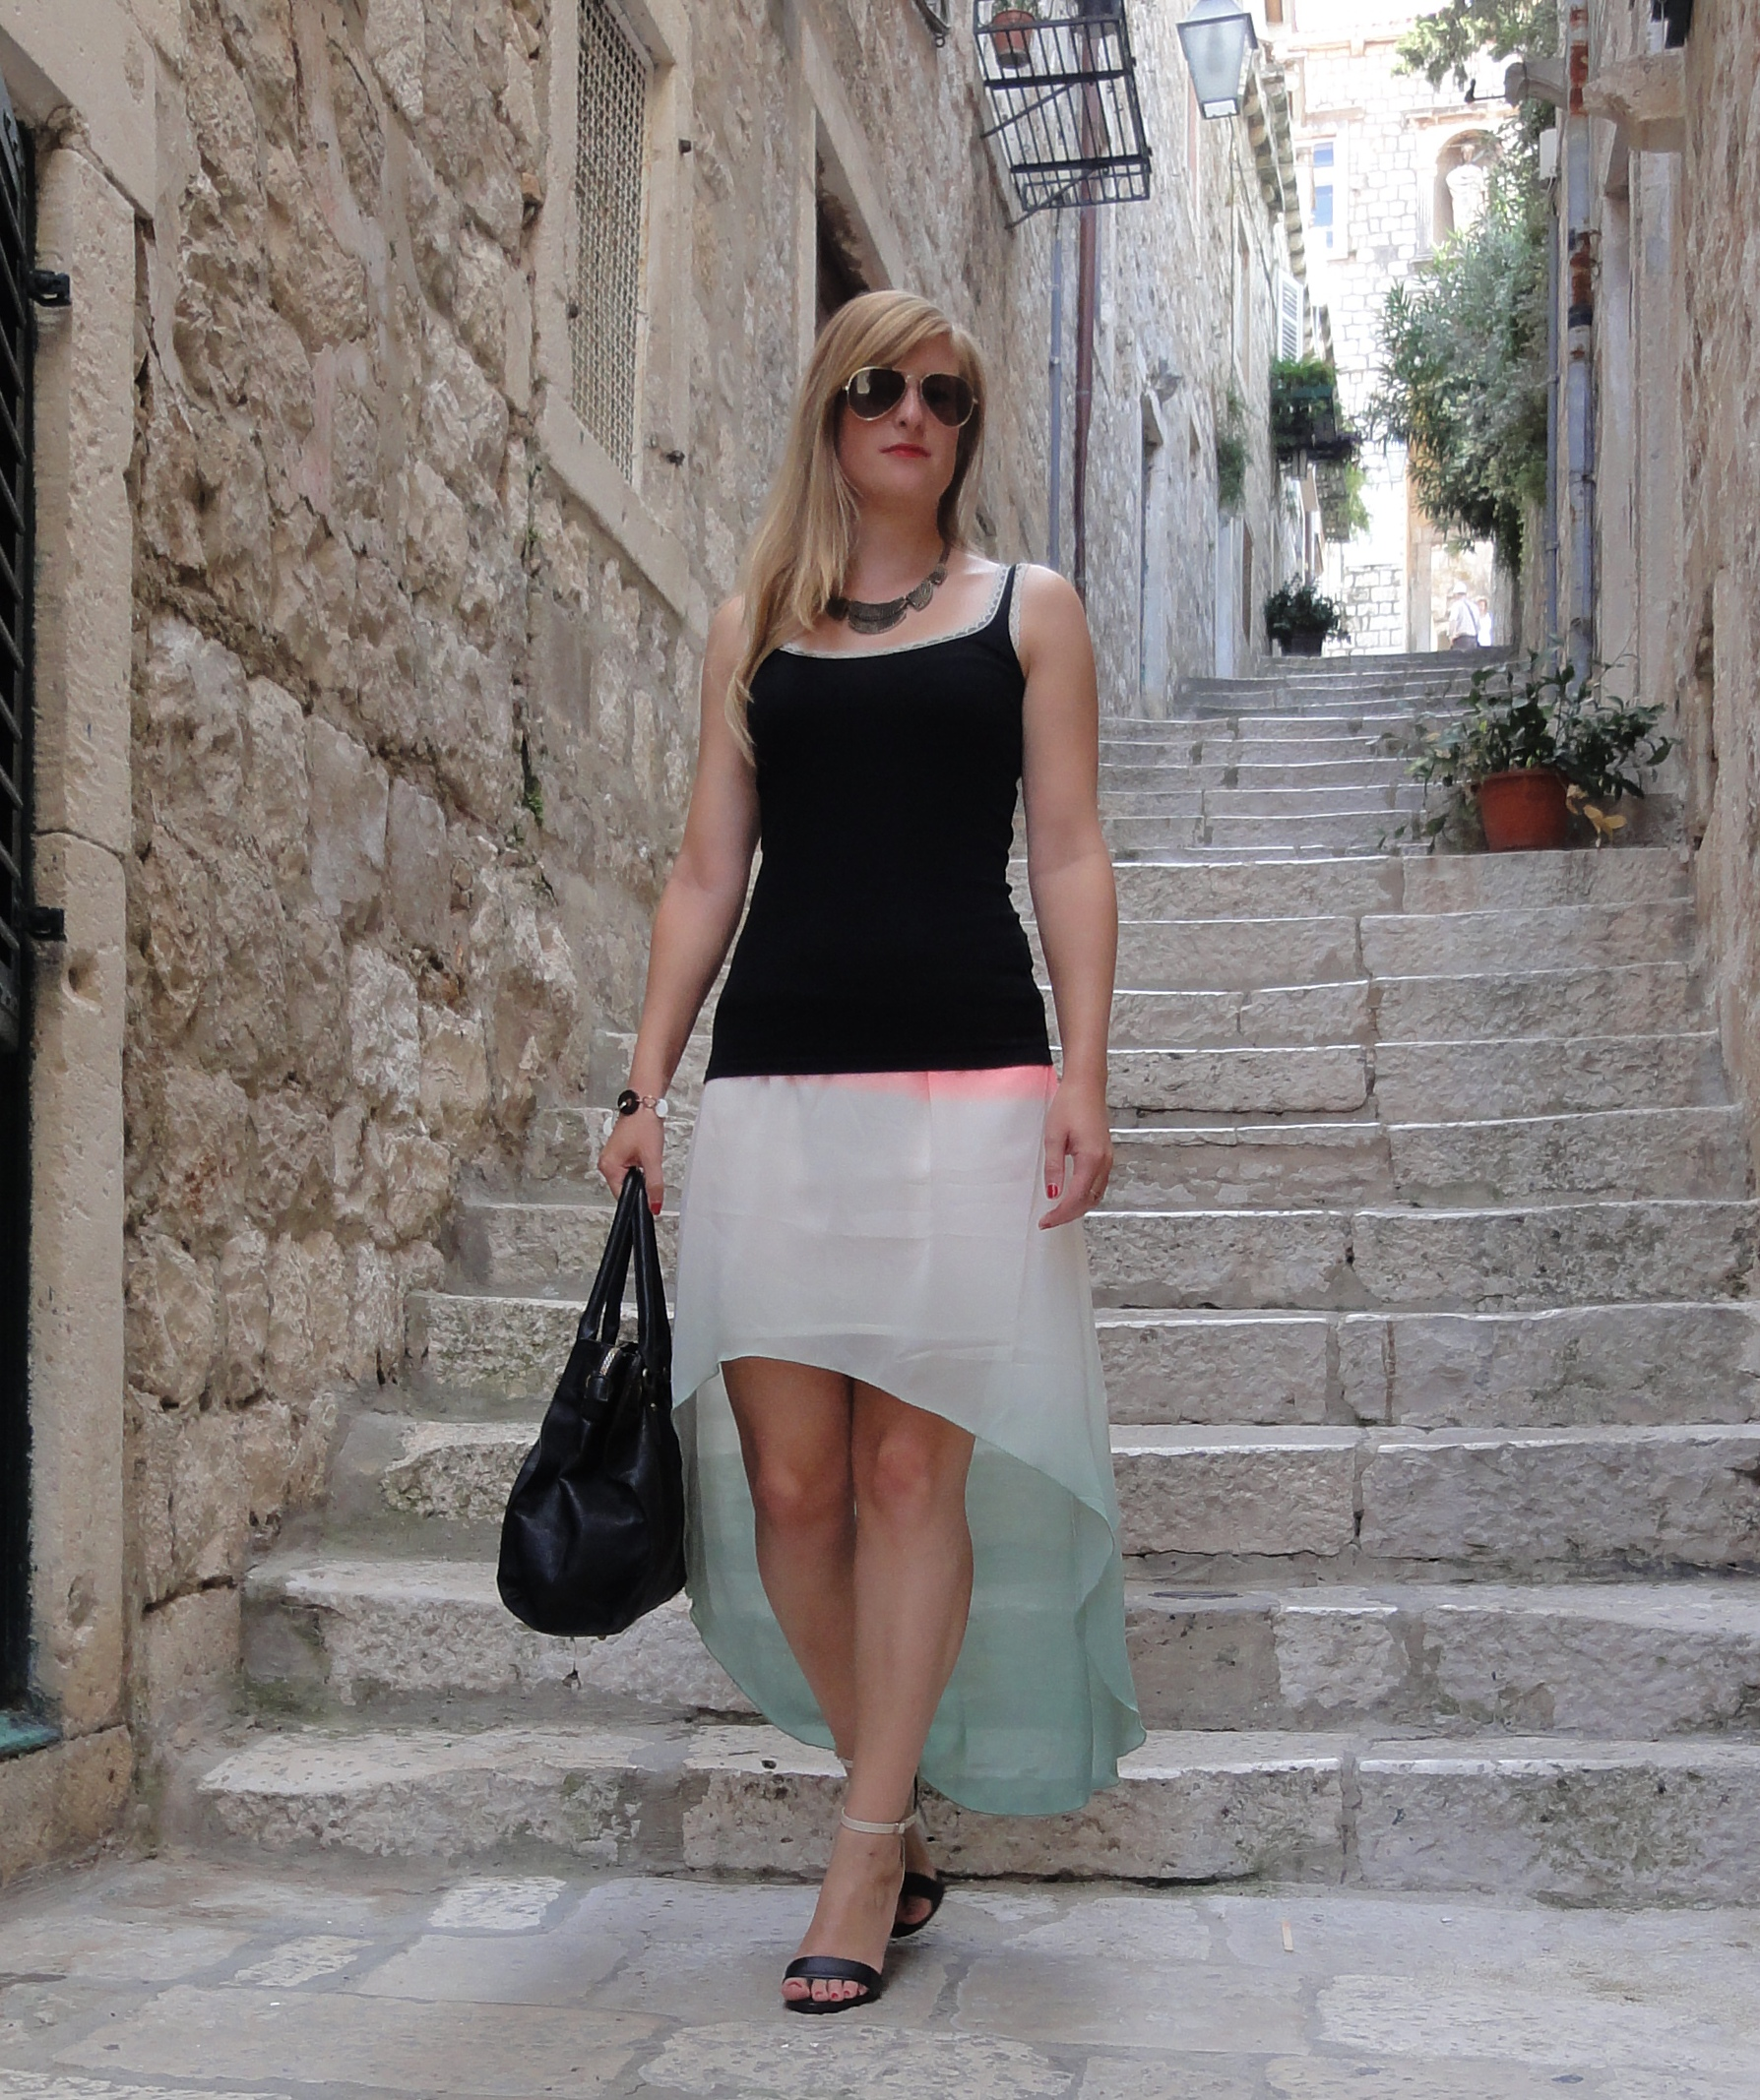 Fashion outfit in Dubrovnik